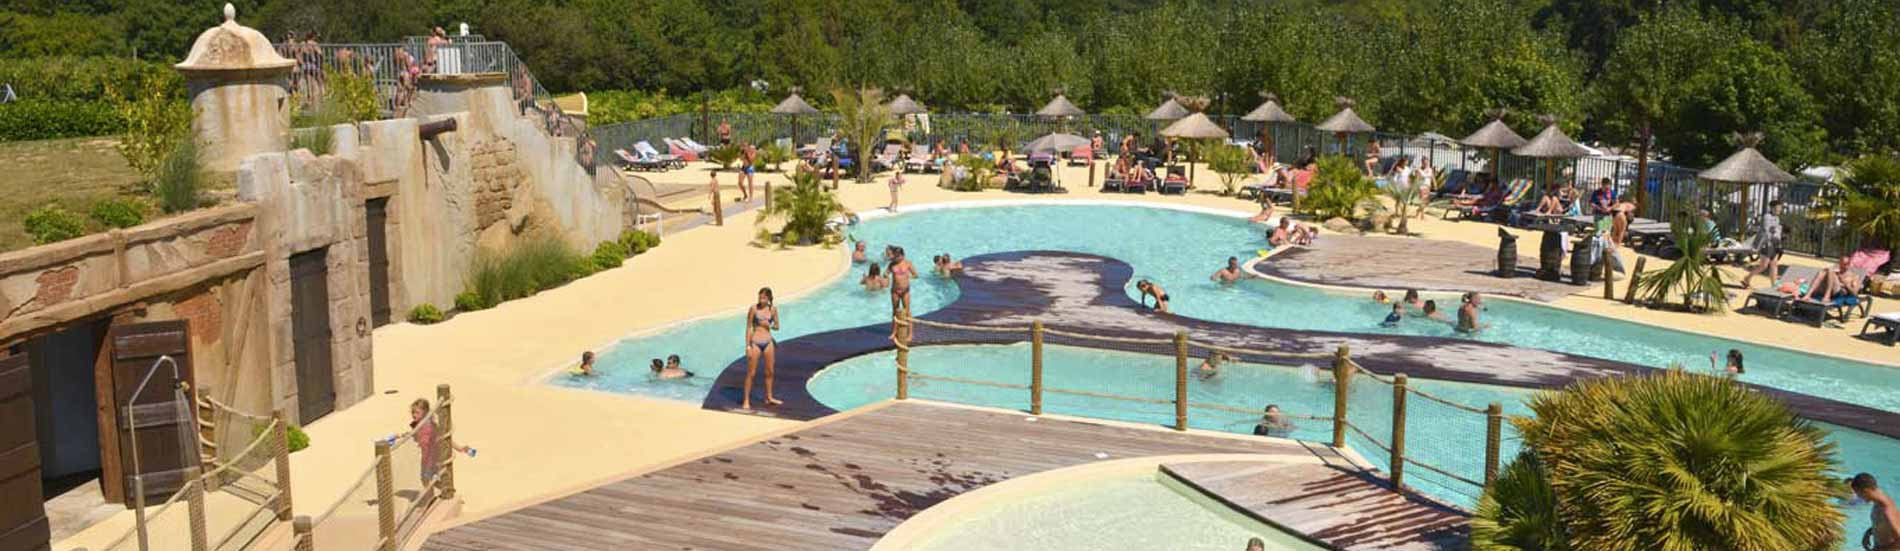 Camping hendaye 4 toiles pays basque camping Camping cote basque avec piscine